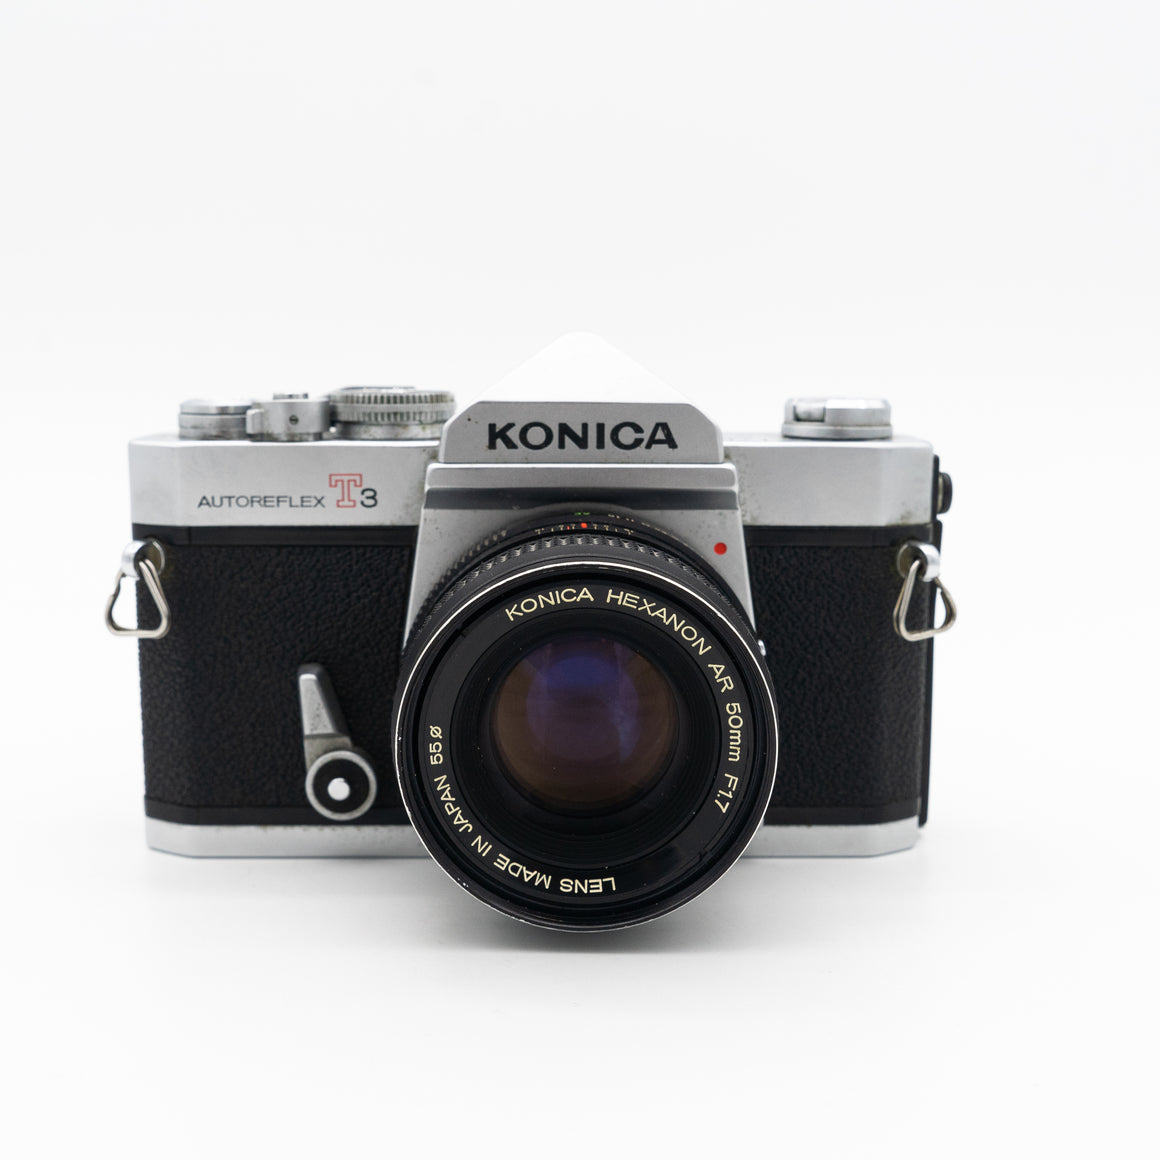 Konica Autoreflex T3 SLR Camera with 50mm f/1.7 Lens